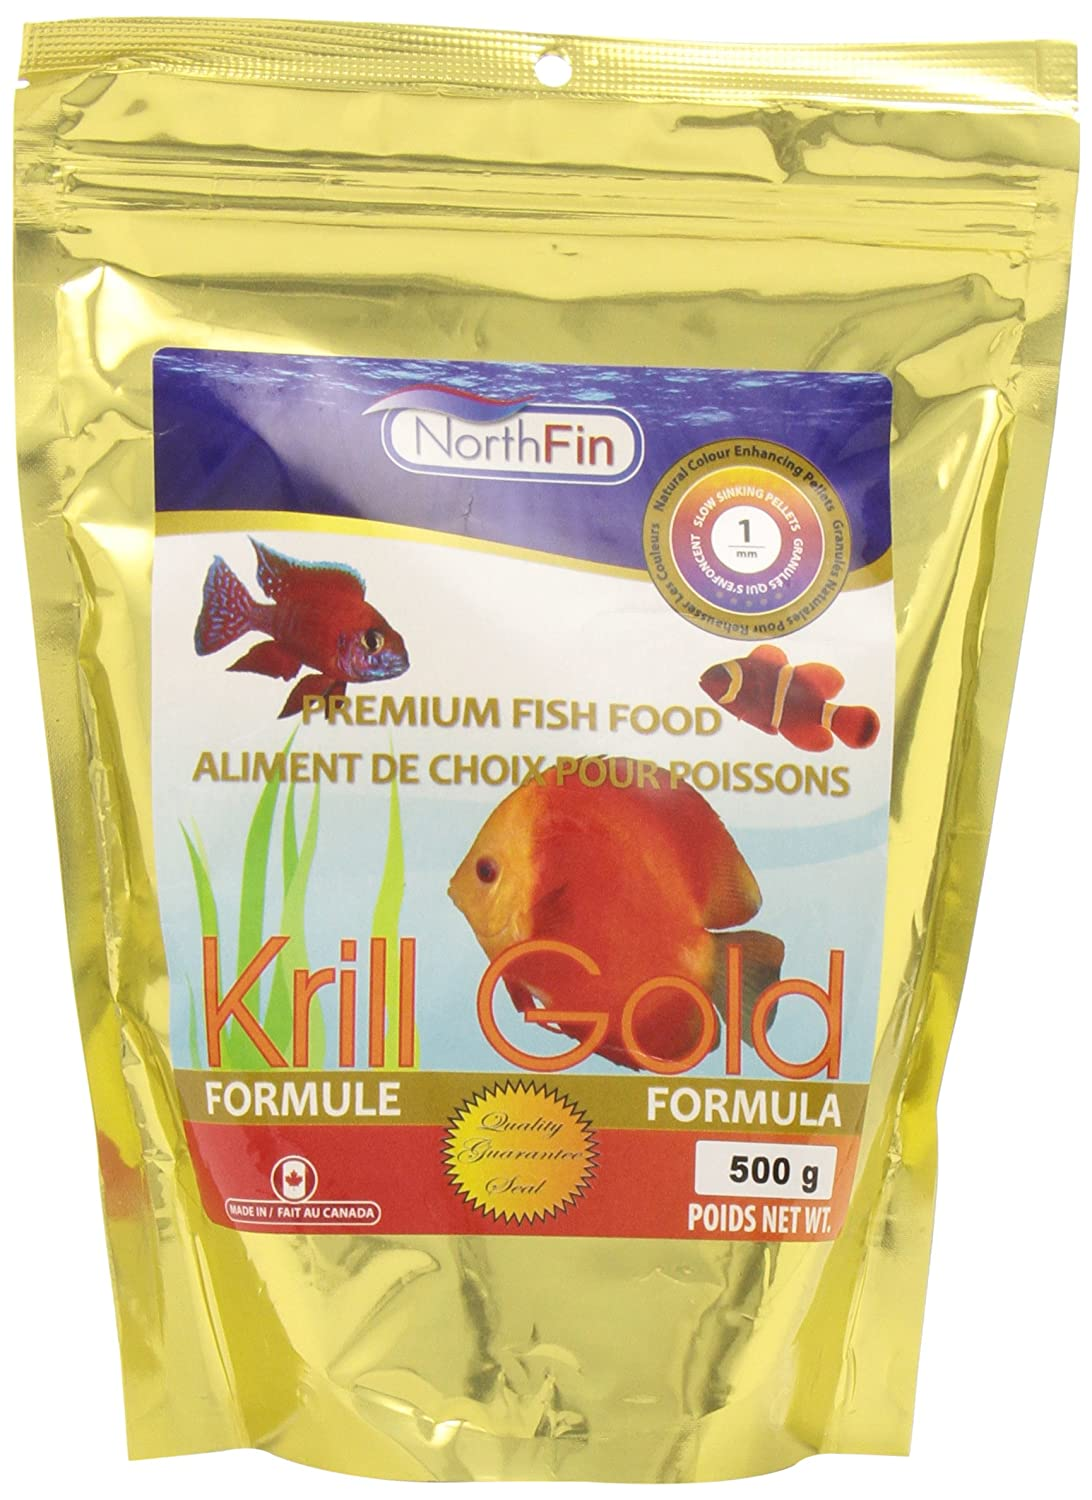 North Fin Krill gold Fish Food 1mm, 500g